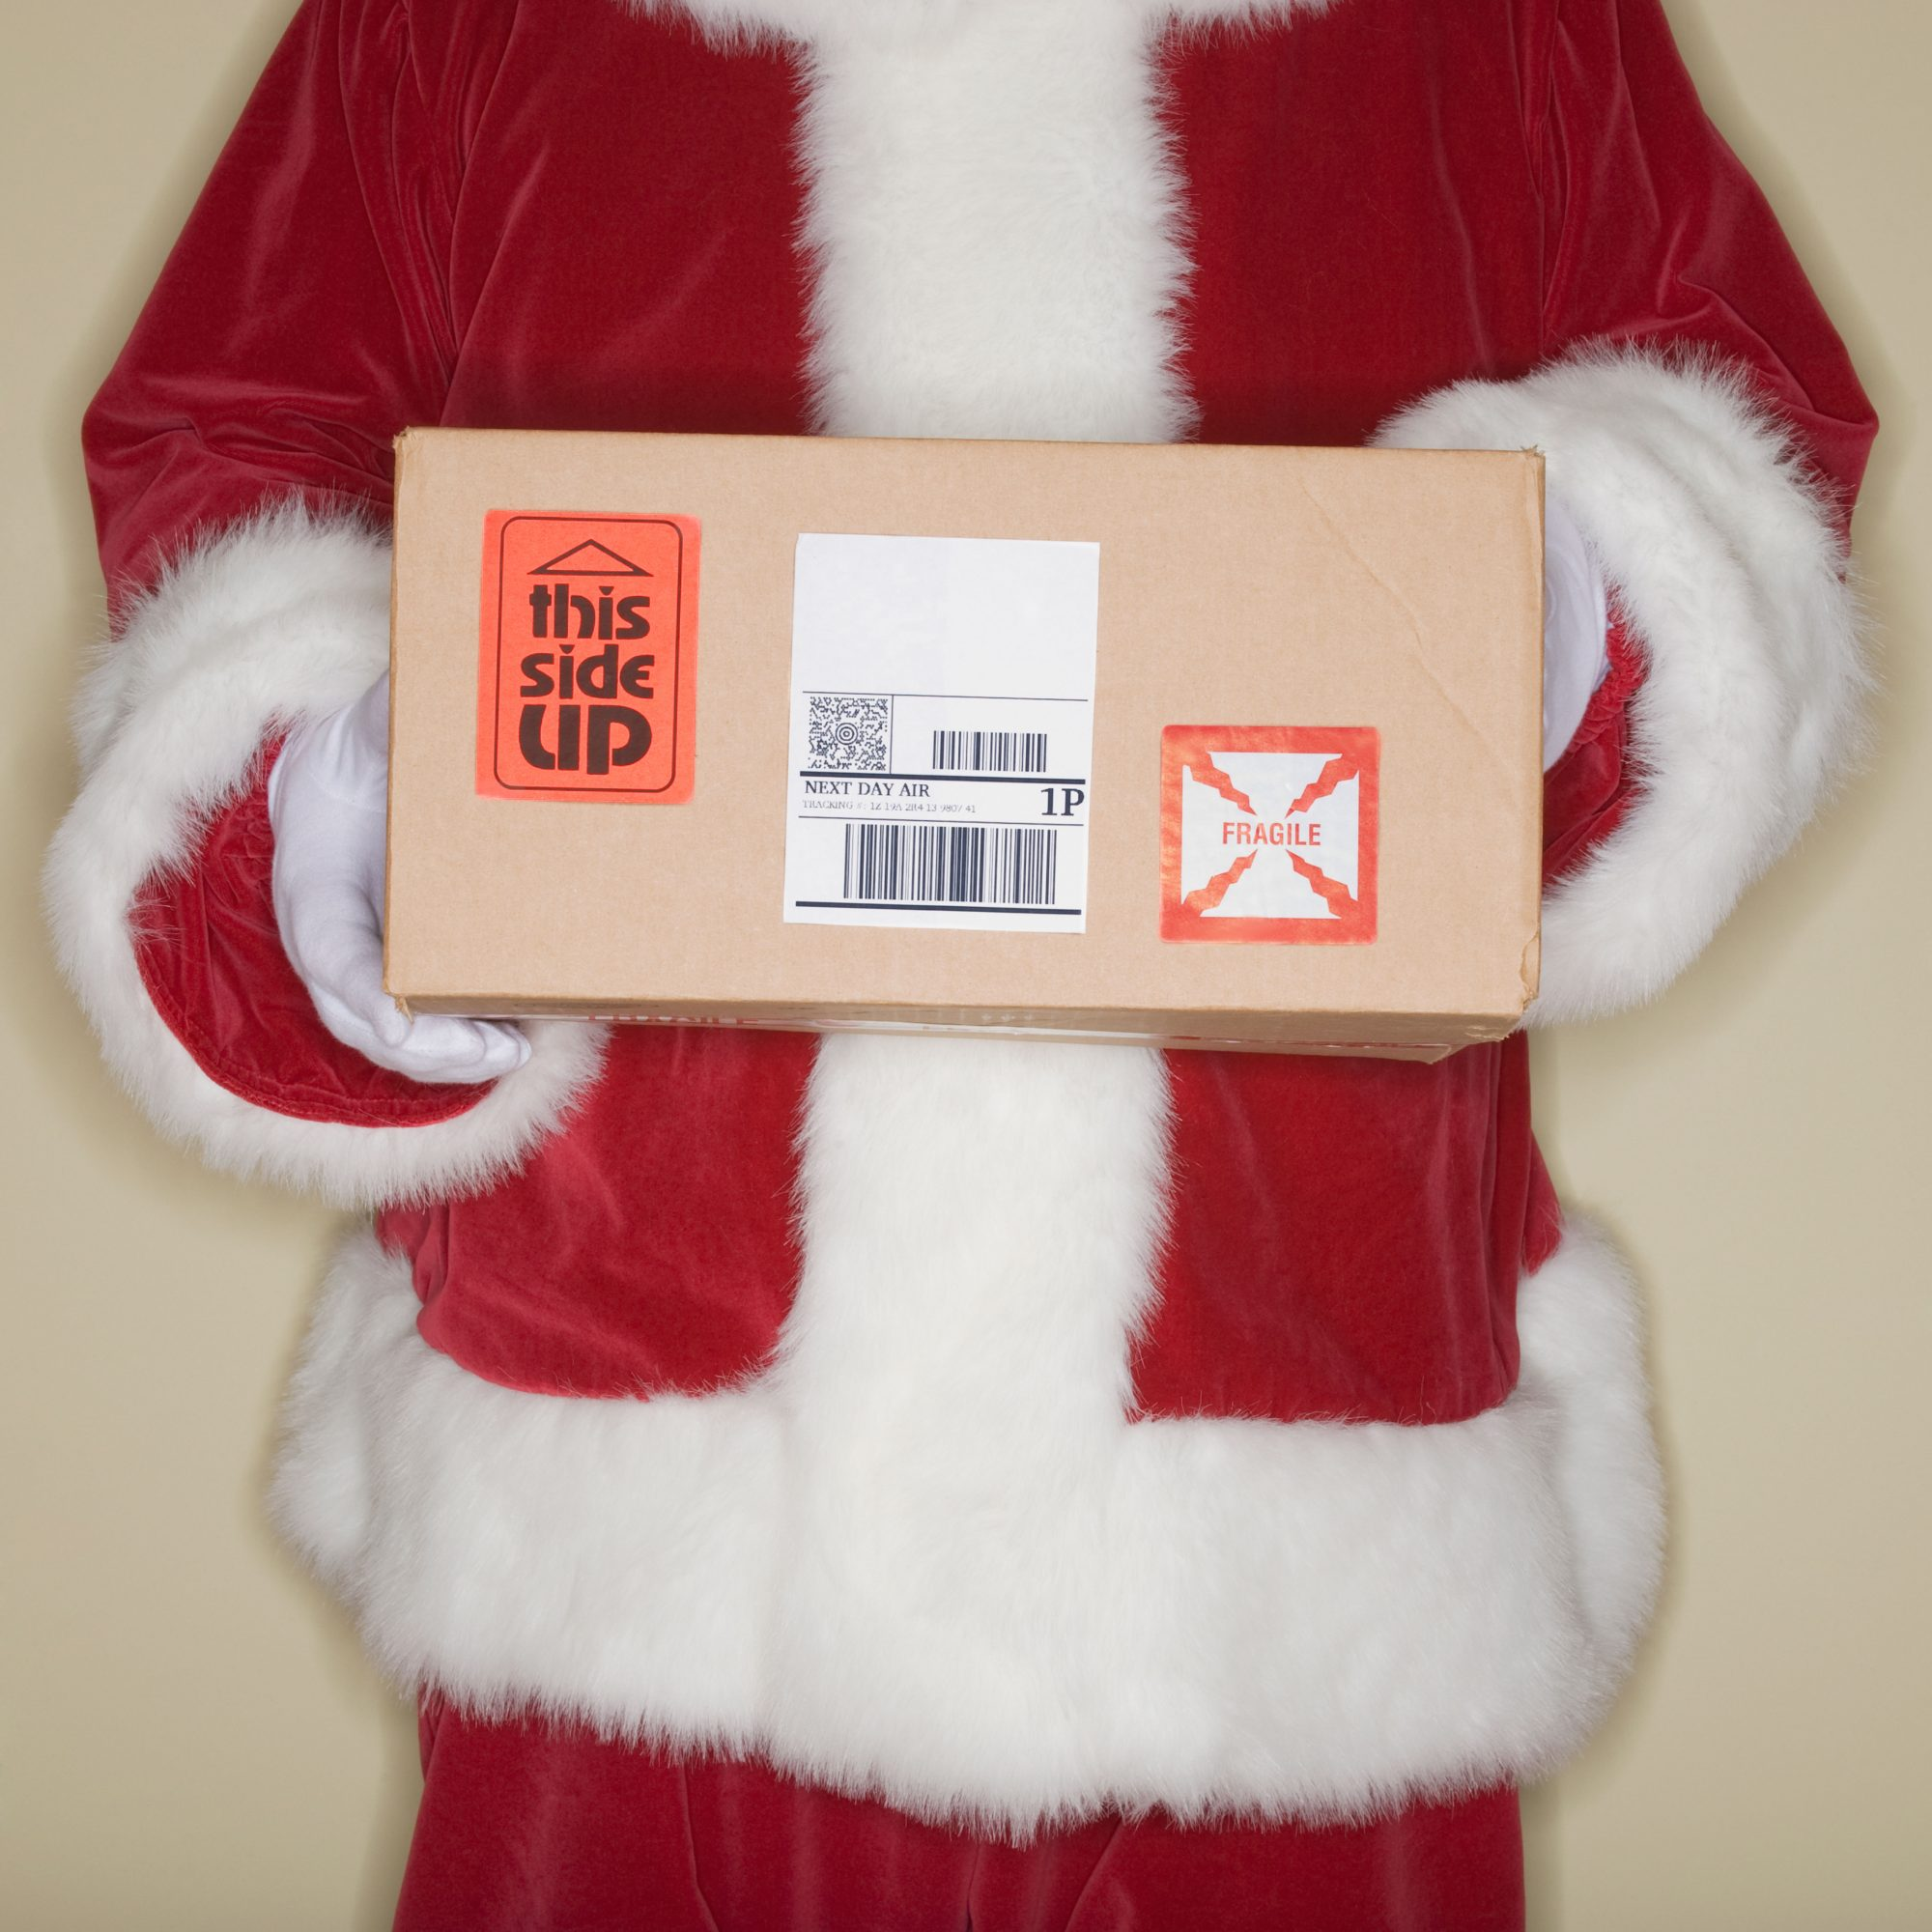 Santa Claus Holding a Package